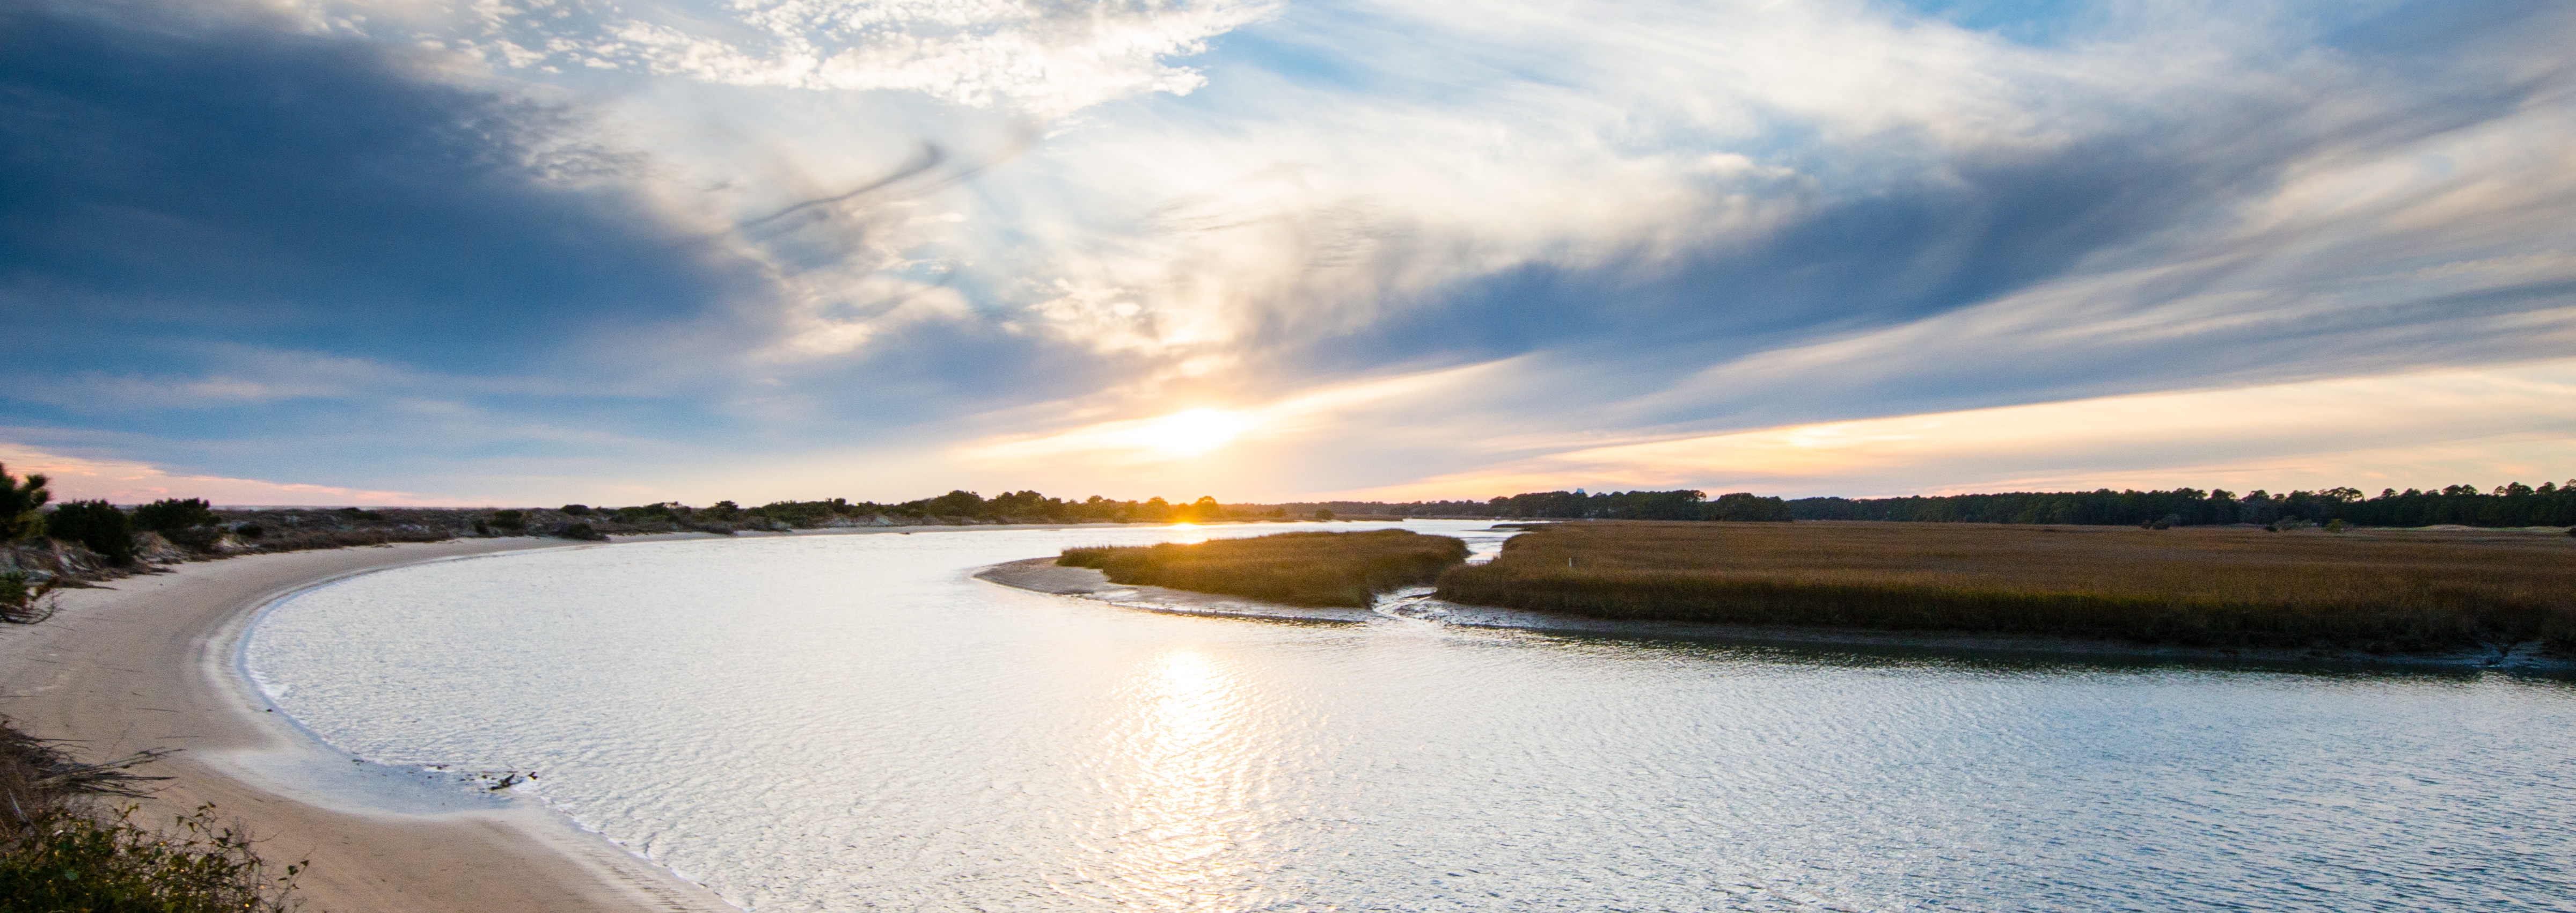 Kiawah Island, One of America's Top Ten Beaches for the 4th Straight Year